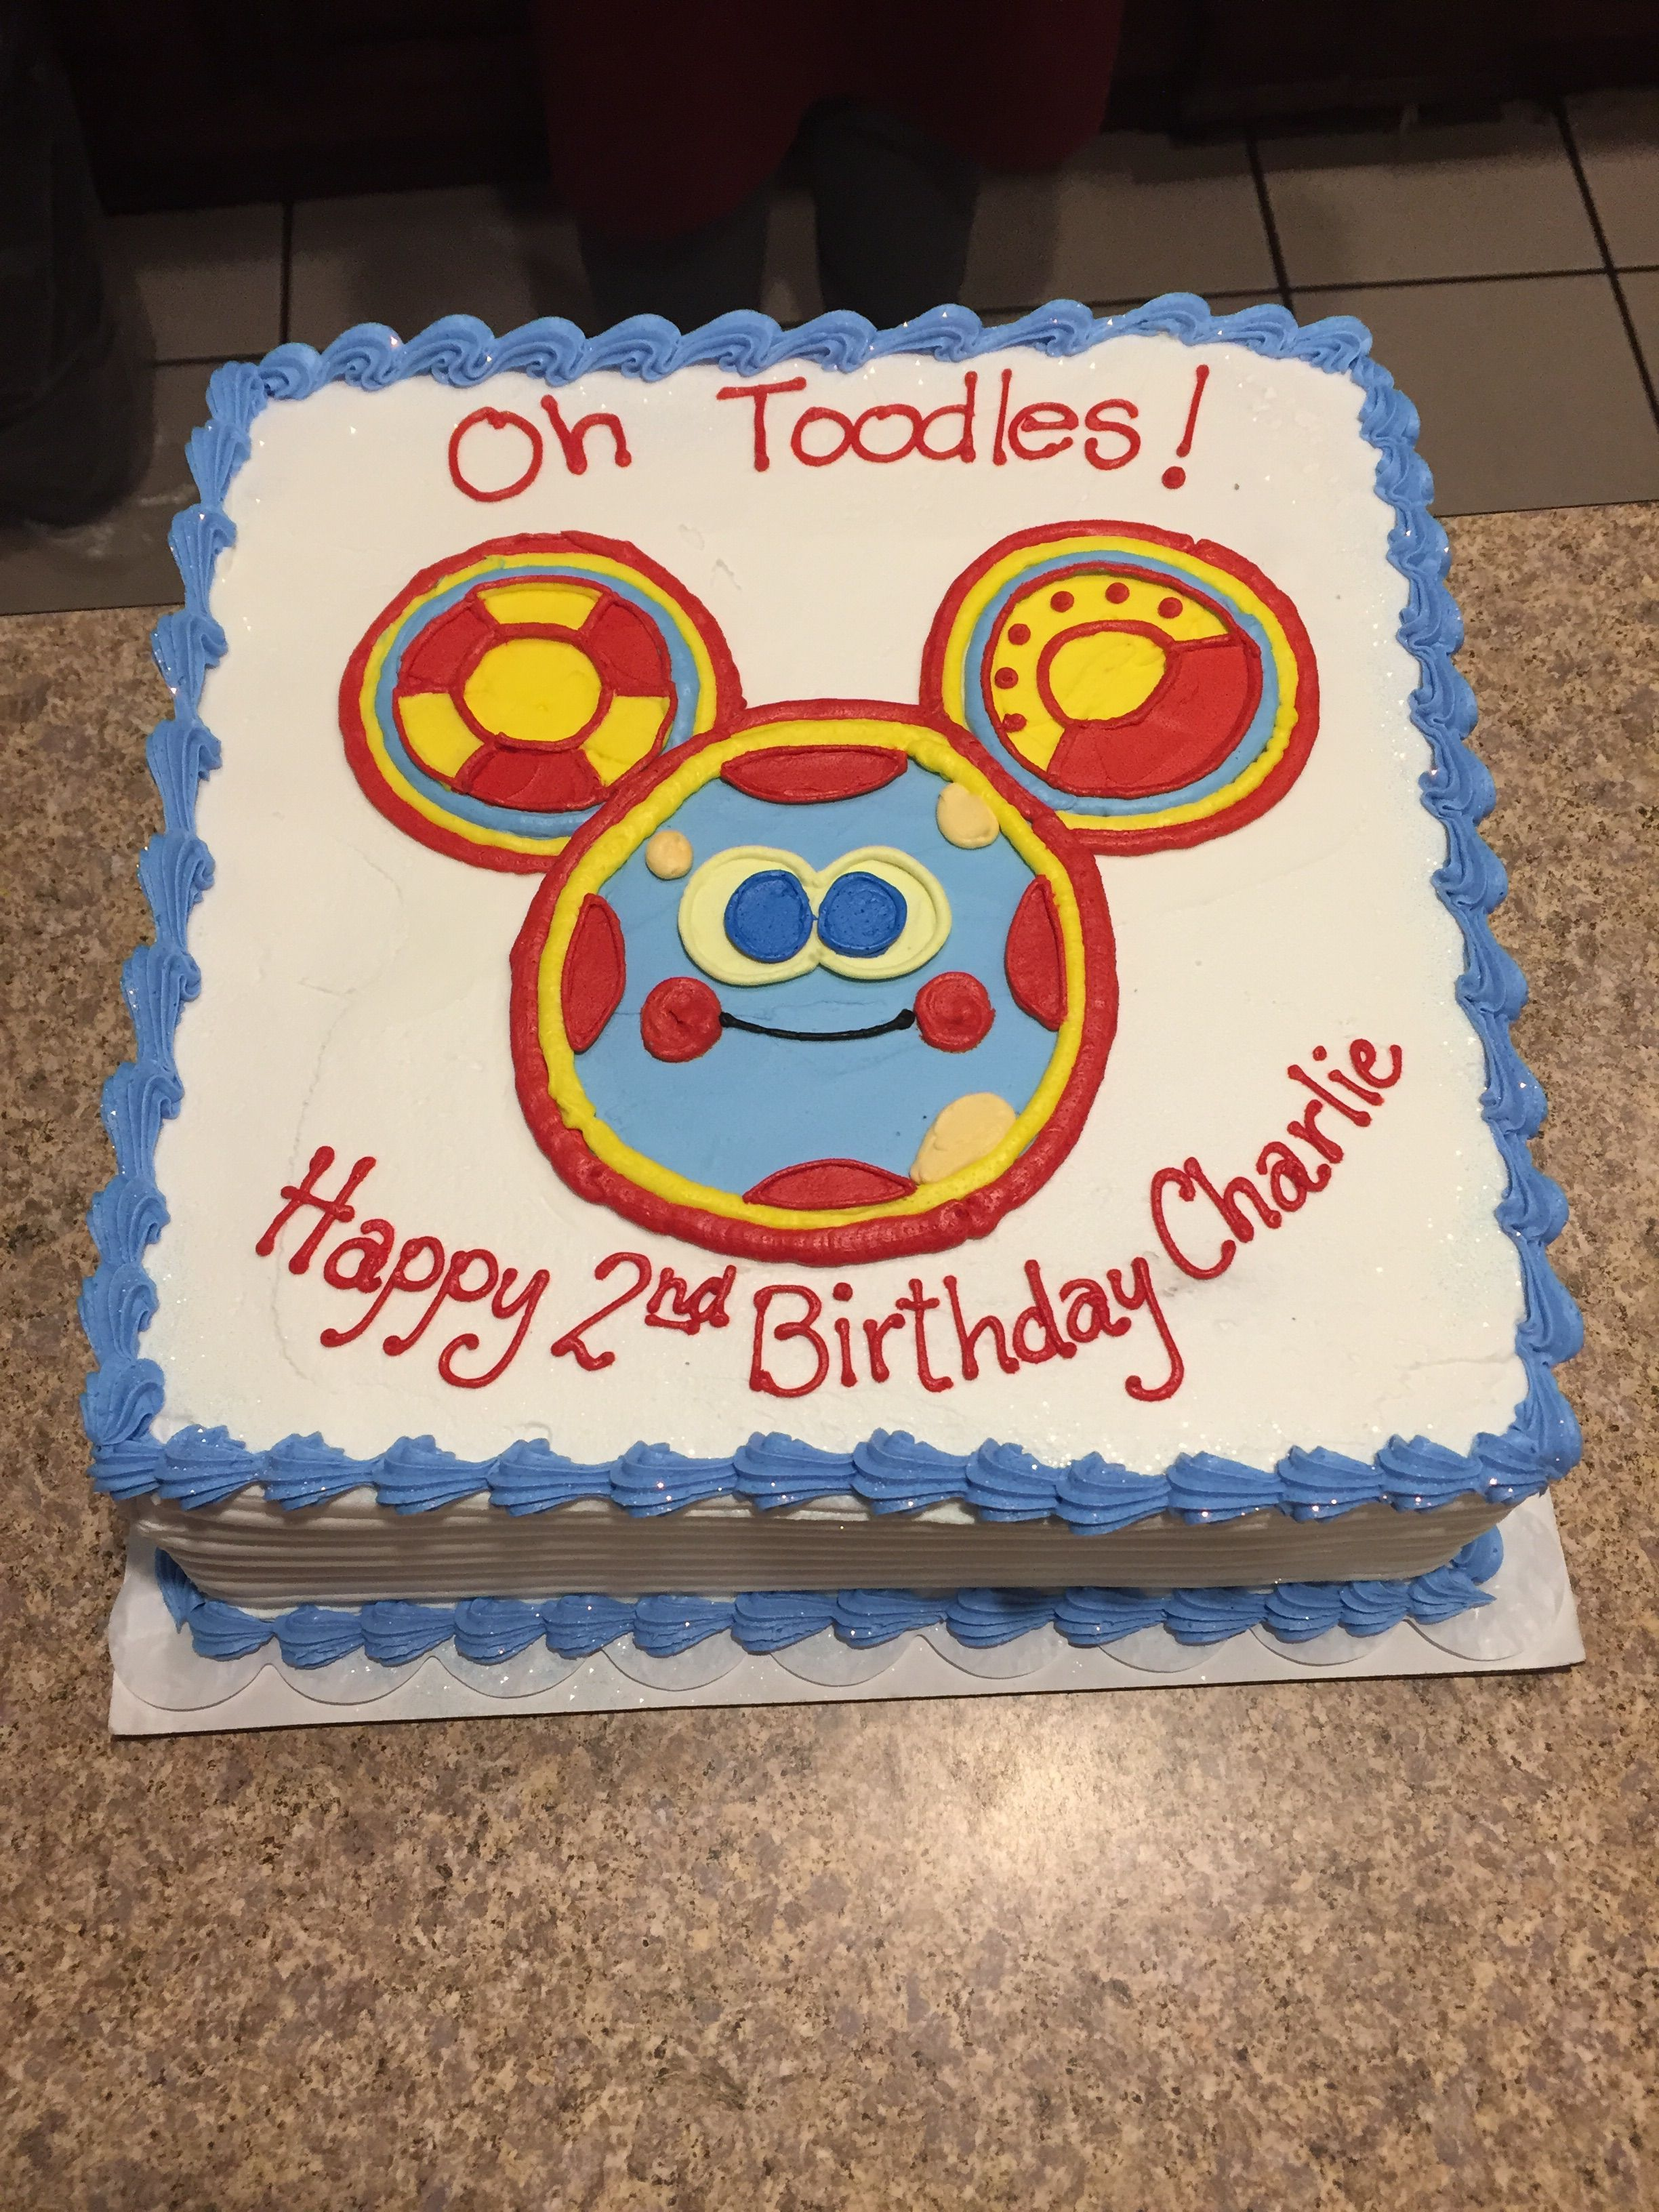 Awe Inspiring Square Blue Red And Yellow Toodles Birthday Cake Funny Birthday Cards Online Alyptdamsfinfo